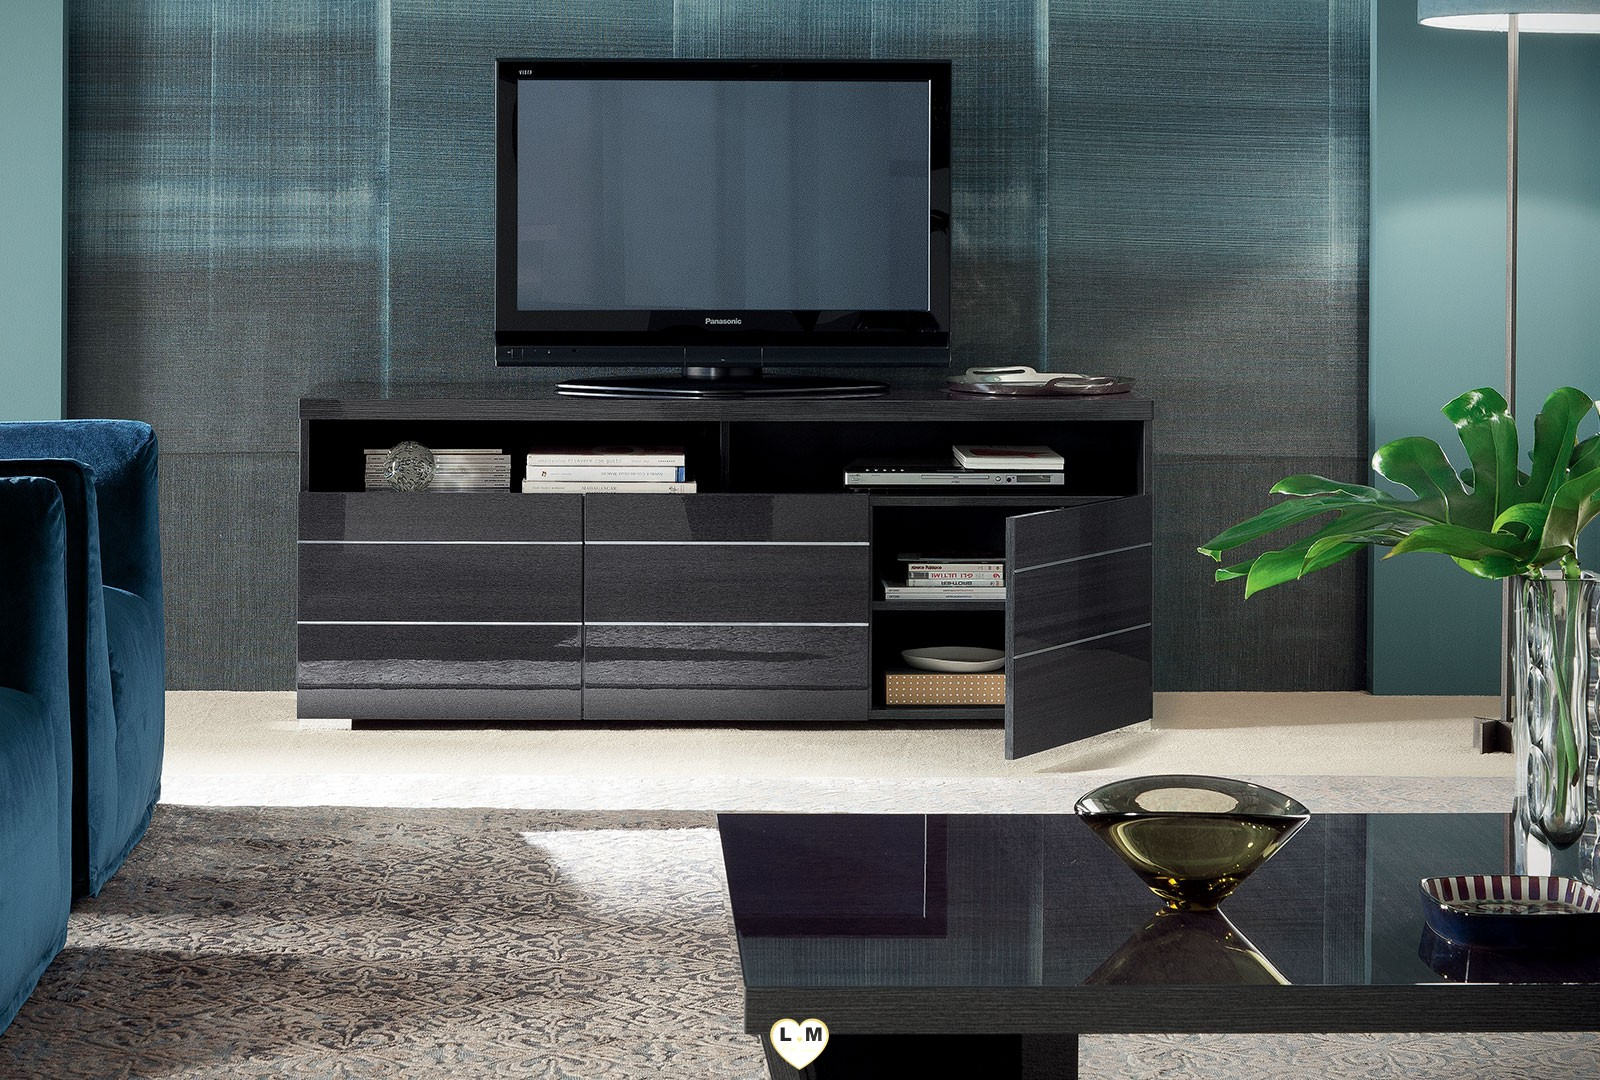 meuble tv bel air stunning simple meuble tv with conforama meuble bel air with meuble tv bel. Black Bedroom Furniture Sets. Home Design Ideas